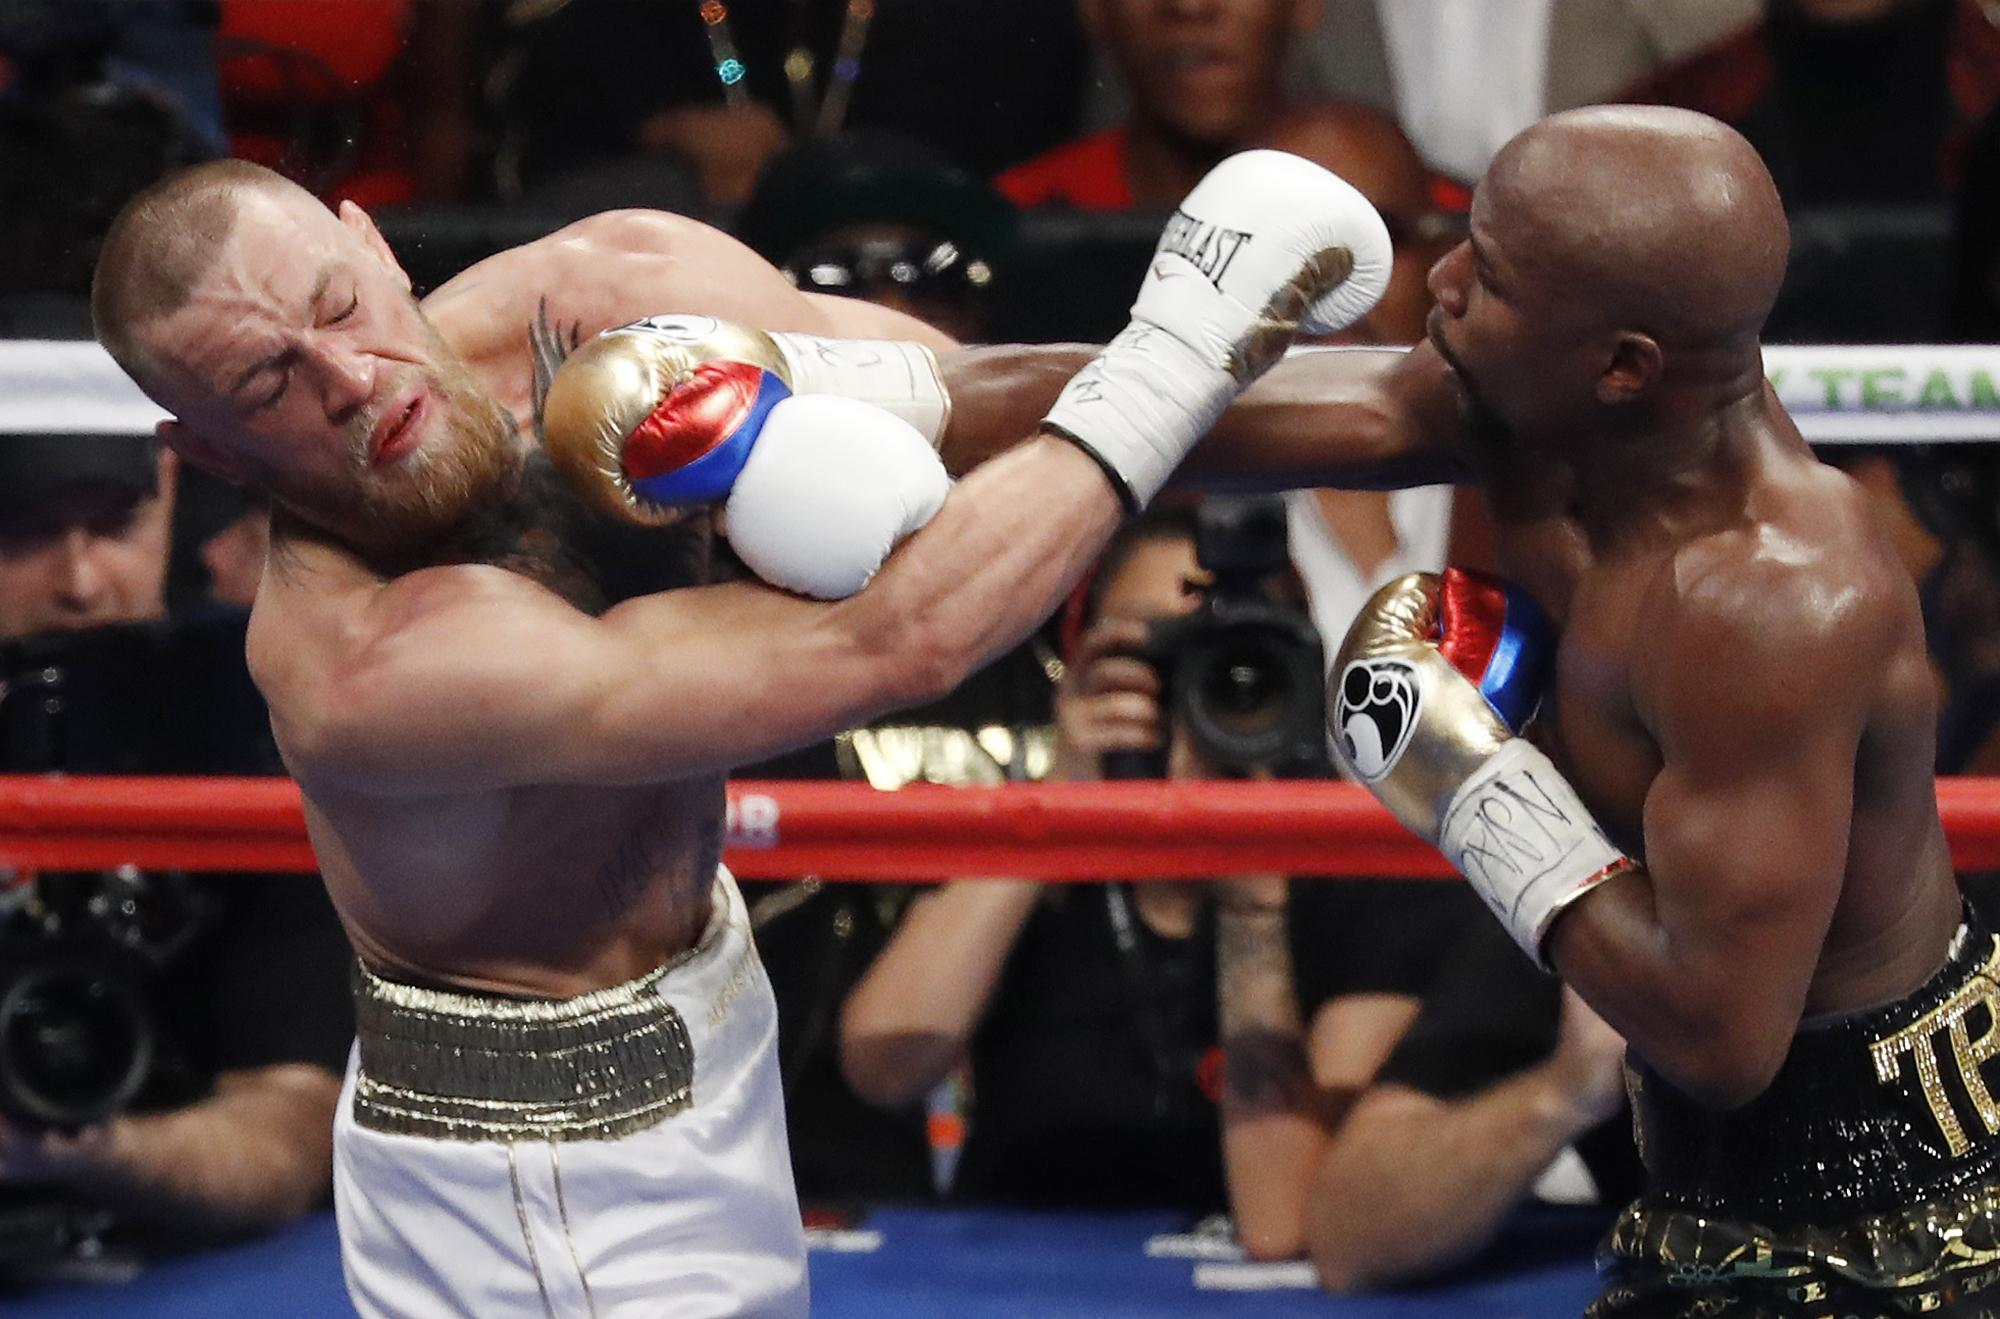 Floyd Mayweather proved far too good for Conor McGregor in the boxing ring last year